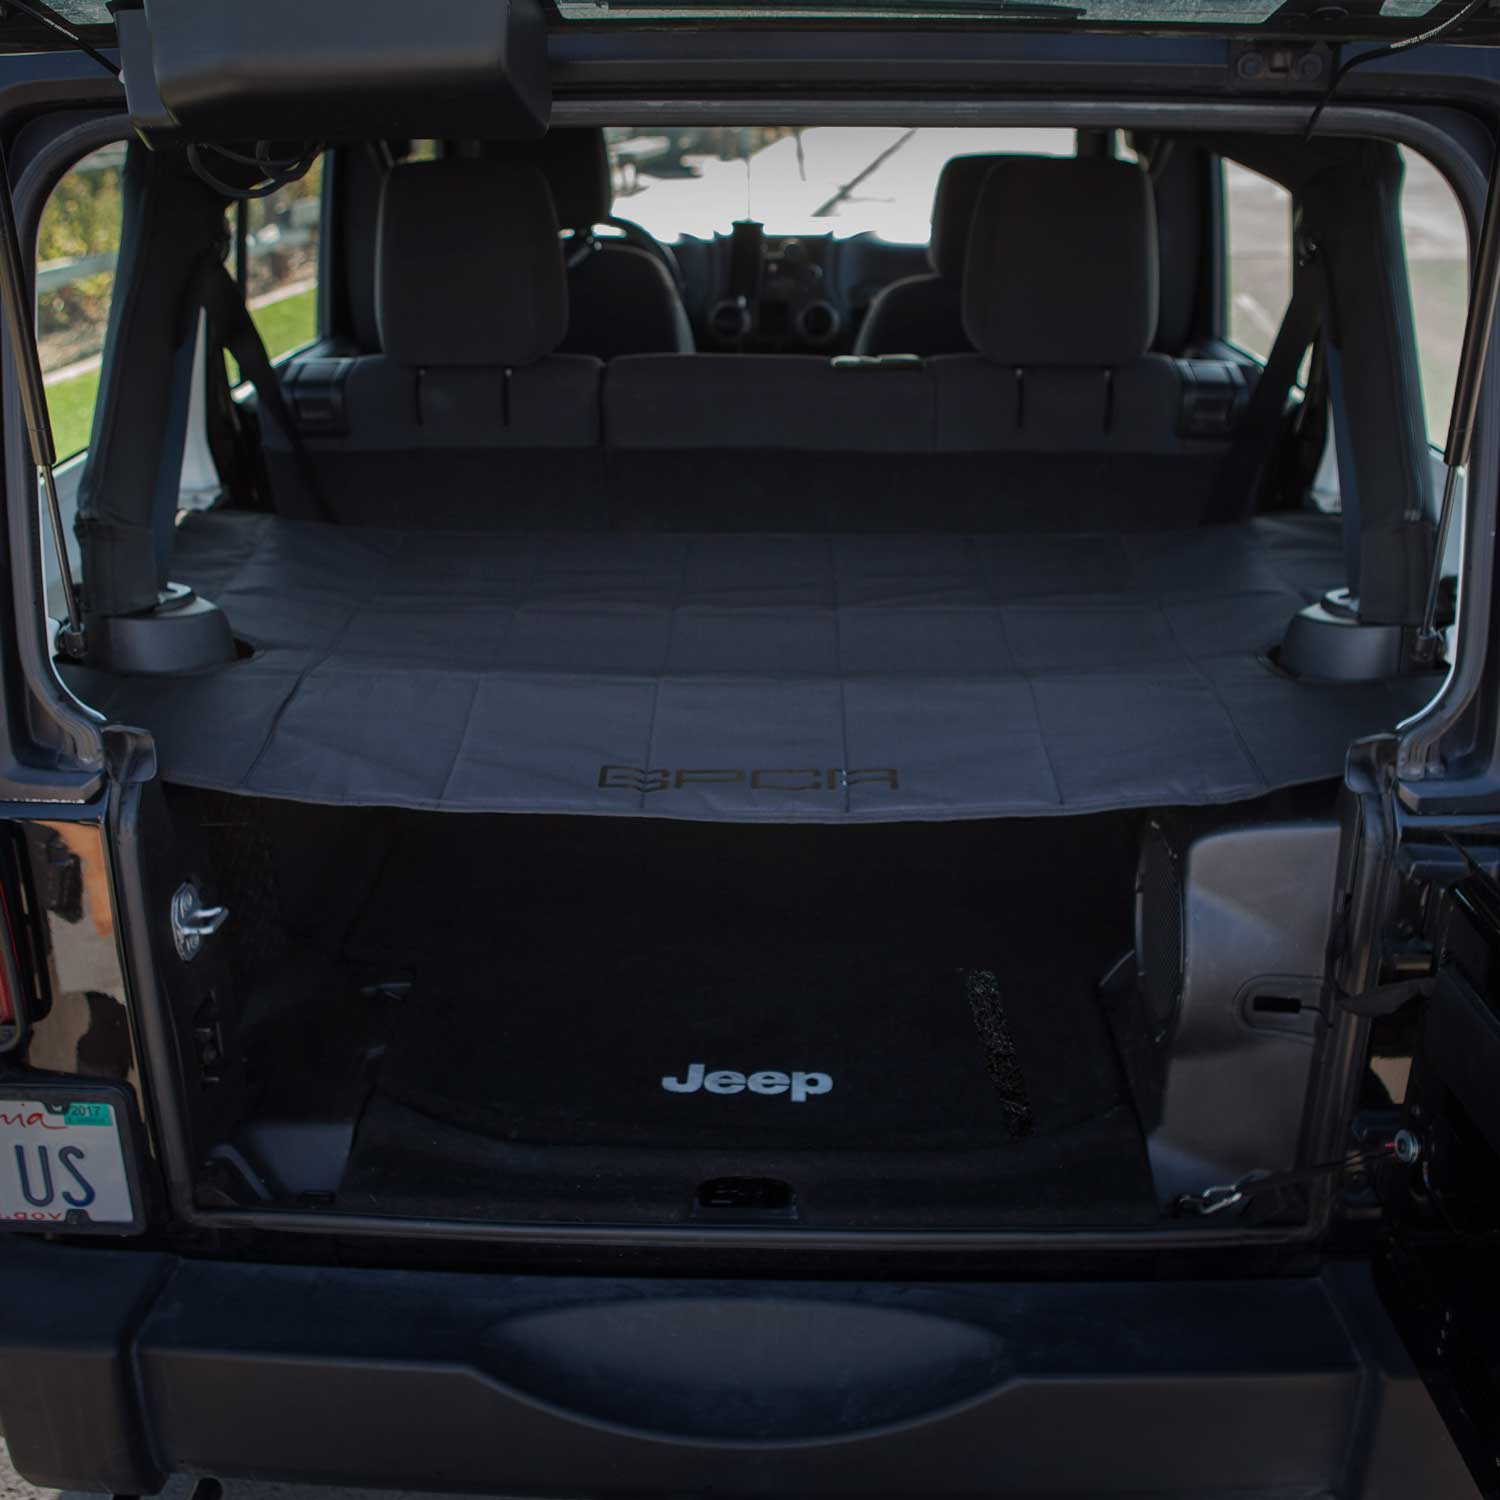 Gpca Jeep Wrangler Cargo Cover Pro Covers Stuff With Top